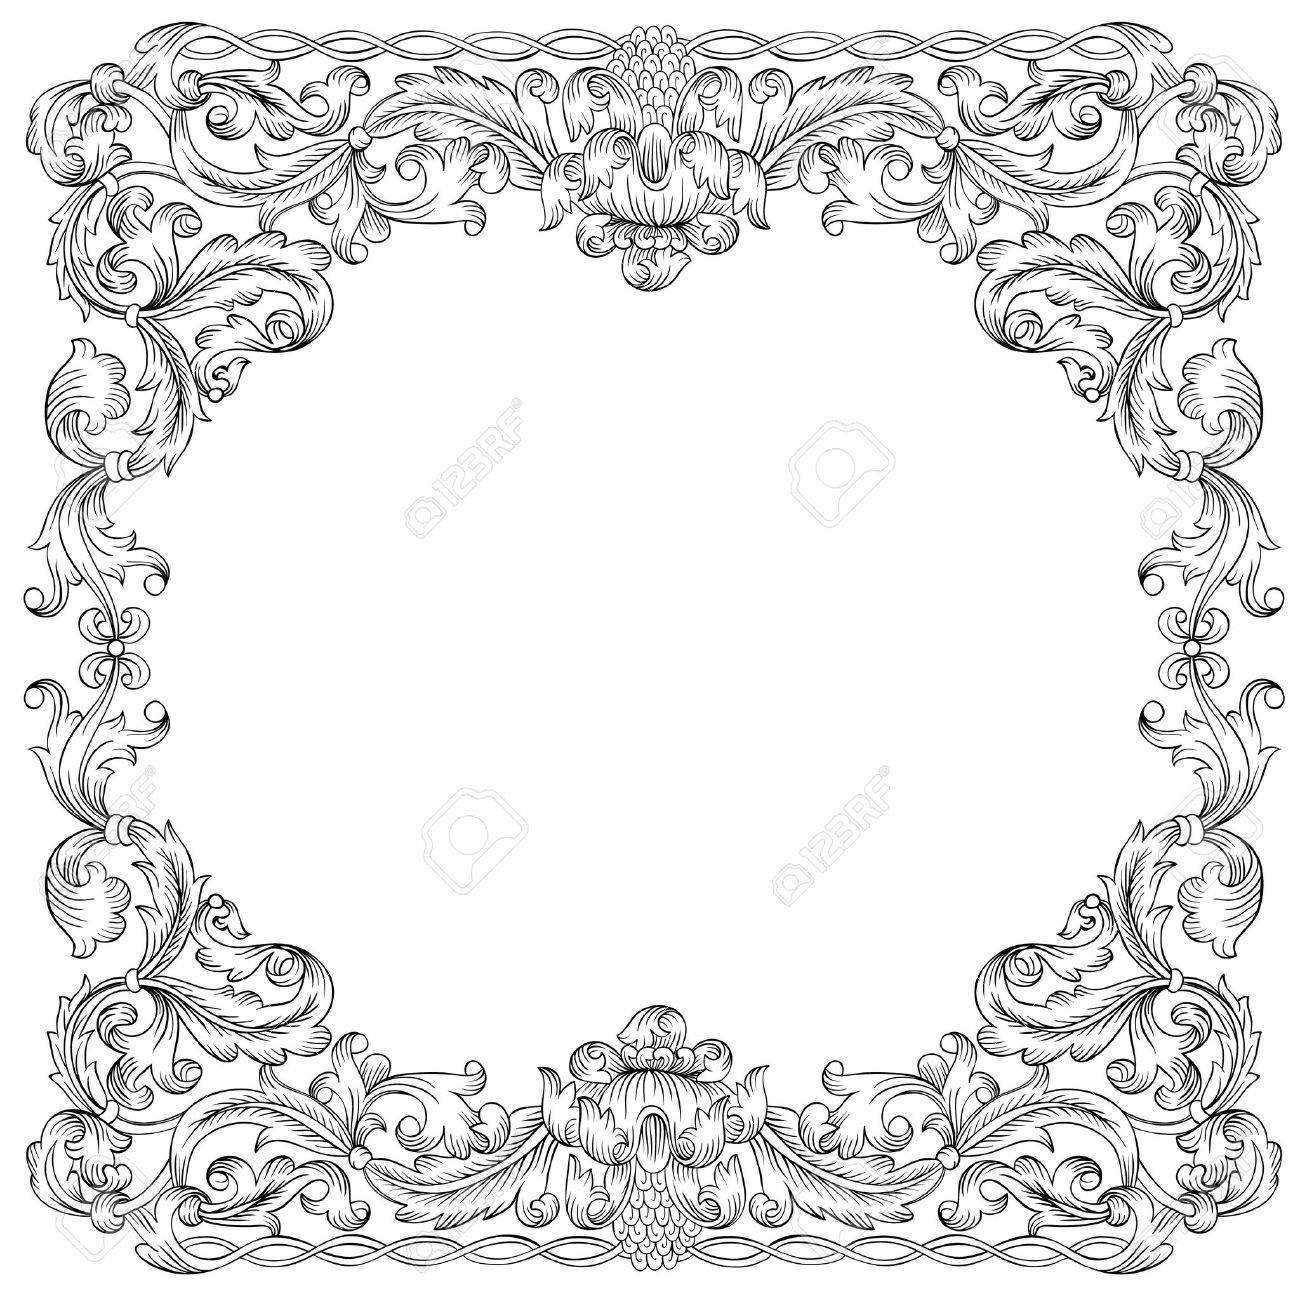 floral ornament frame simulates engraving based on the typography graphics beginning of the end